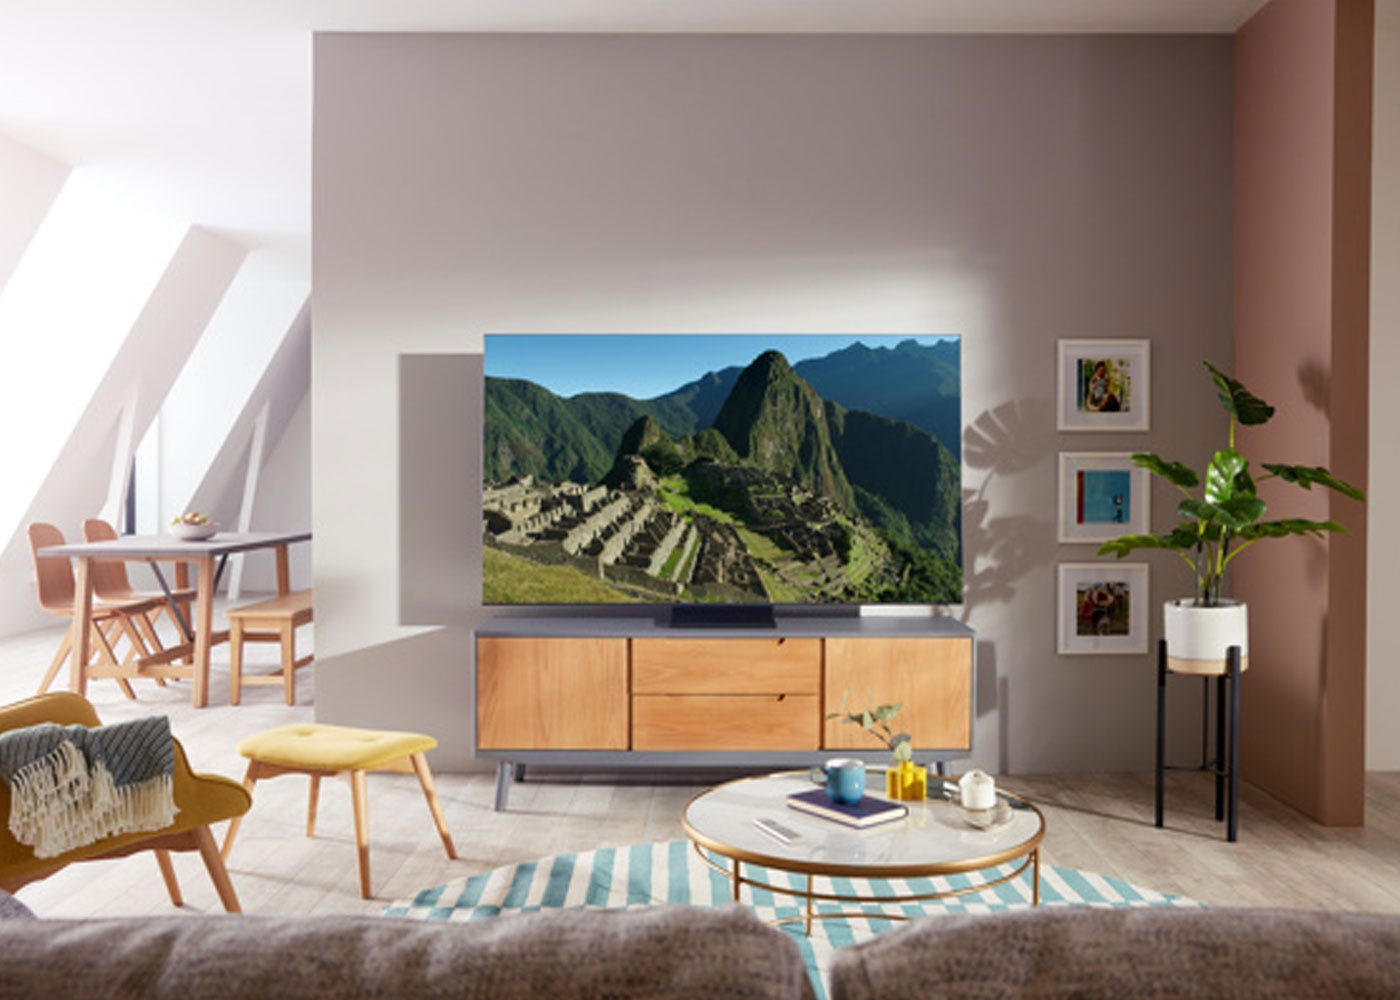 Aa shown: Samsung 2020 85 Q950TS Flagship QLED 8K HDR 4000 Smart TV - On stand.